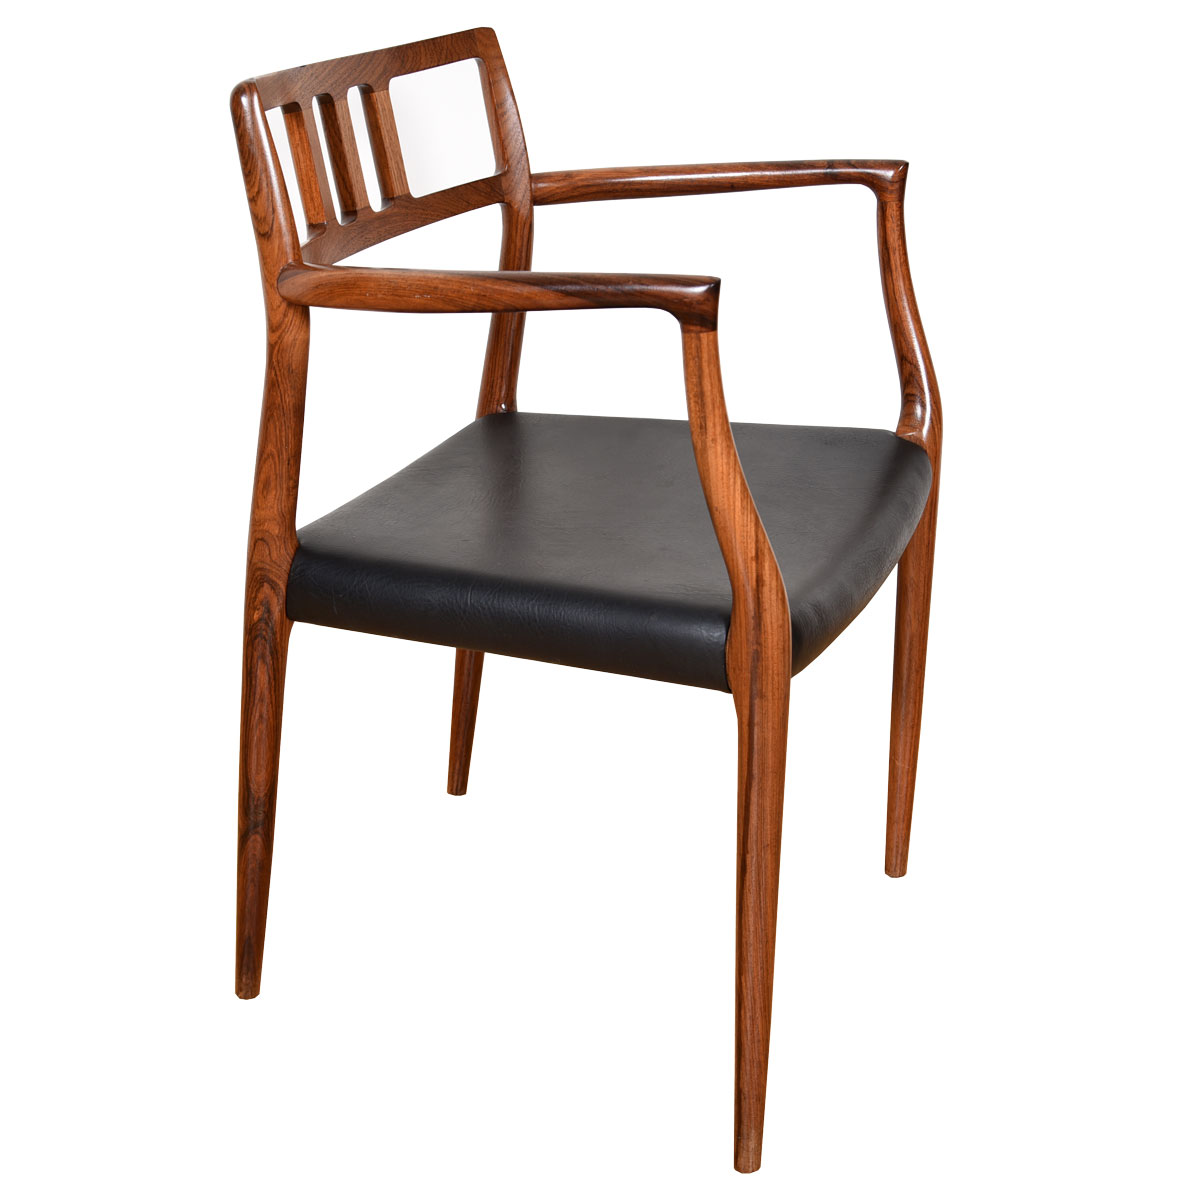 Single Dining Chair with Arms by Niels Moller in Rosewood